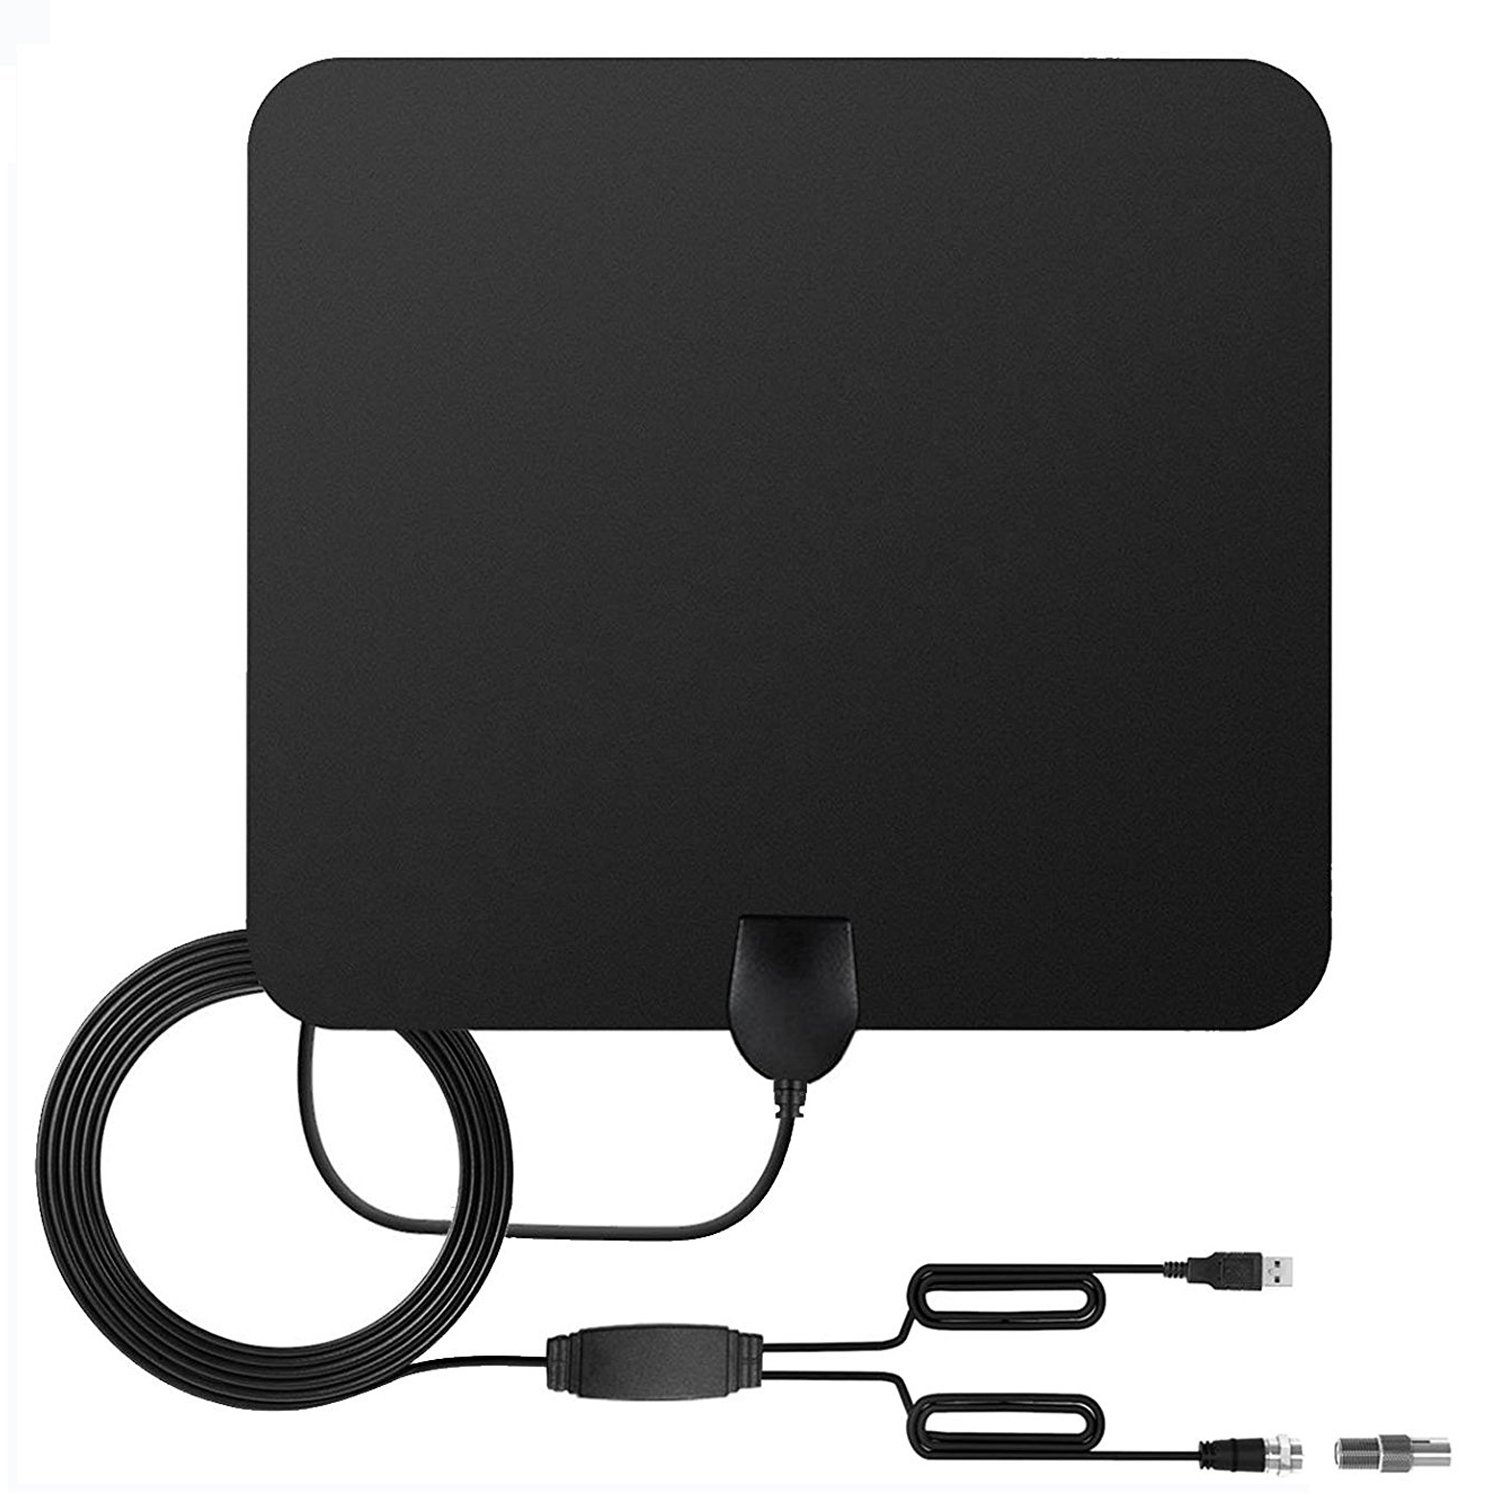 2018 UPGRADED HDTV Antenna Indoor for Highest Performance Digital TV Antenna with 50 Miles Long Range Detachable Amplifier Signal Booster Upgraded Version-10ft Coax Cable(Black)